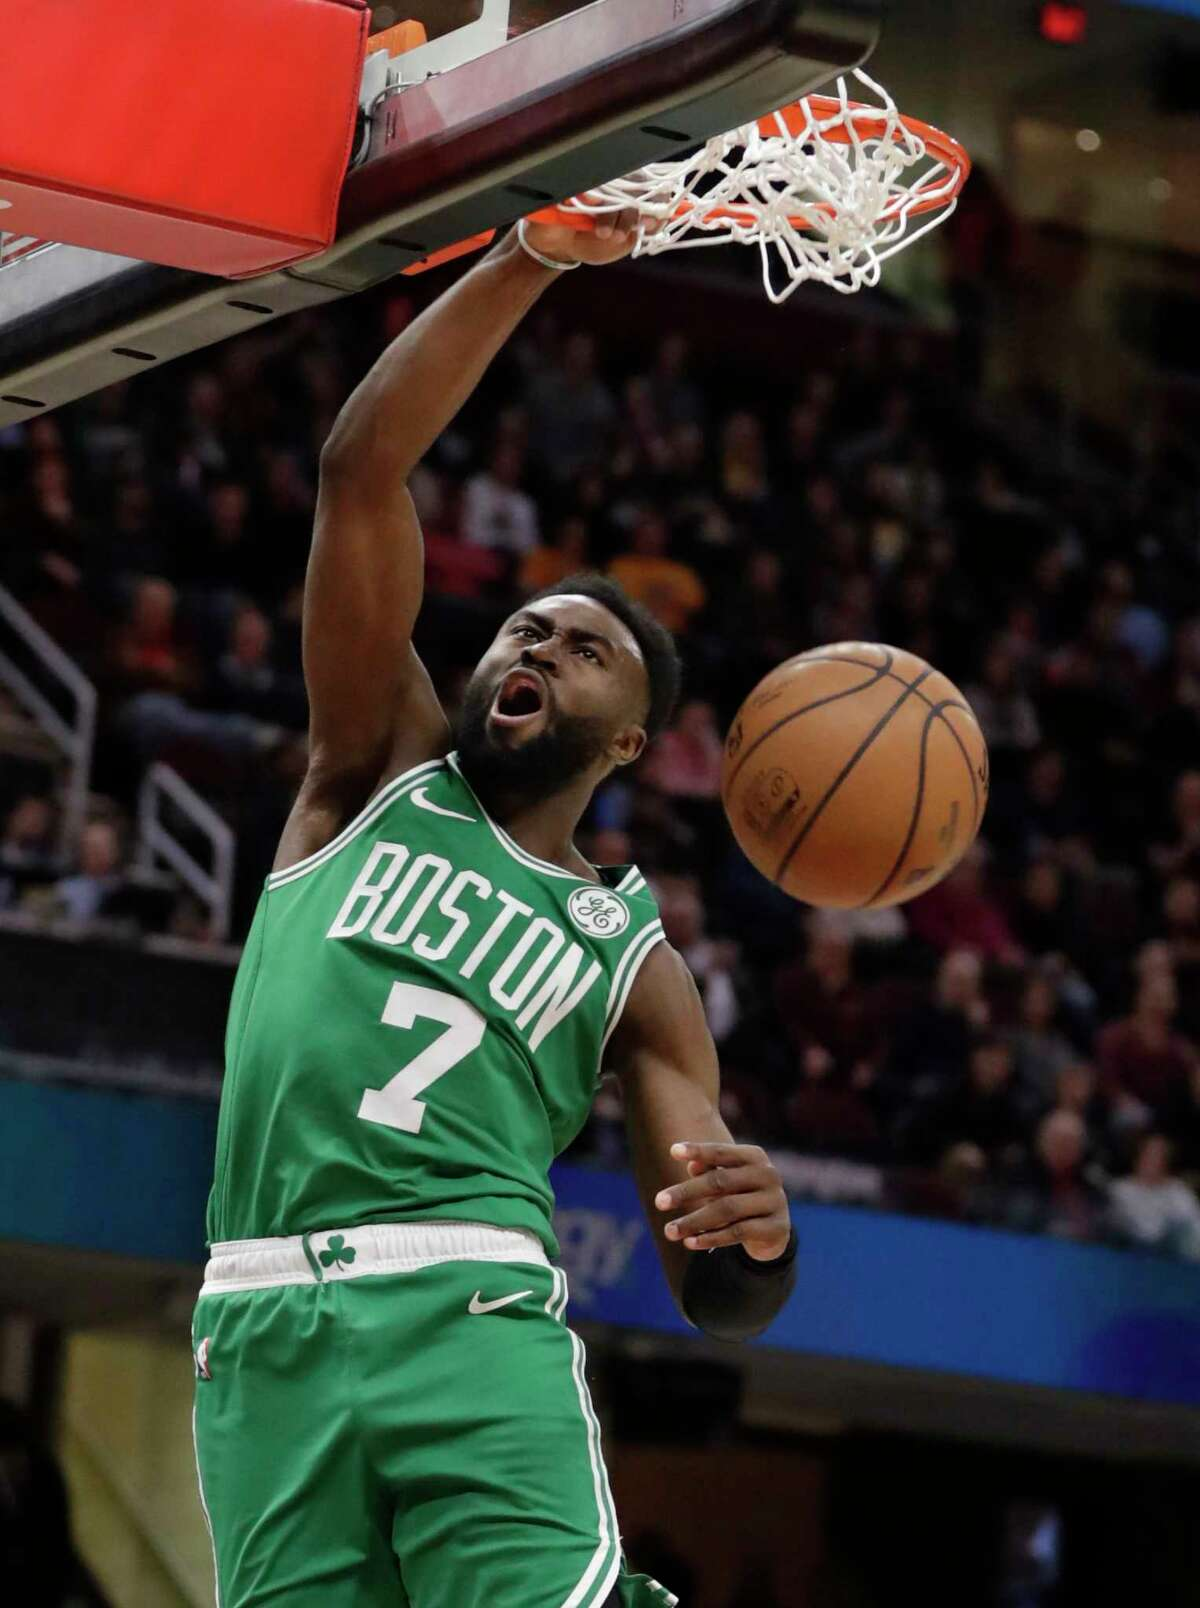 Boston Celtics' Jaylen Brown dunks against the Cleveland Cavaliers during the first half of an NBA basketball game Tuesday, Feb. 5, 2019, in Cleveland. (AP Photo/Tony Dejak)